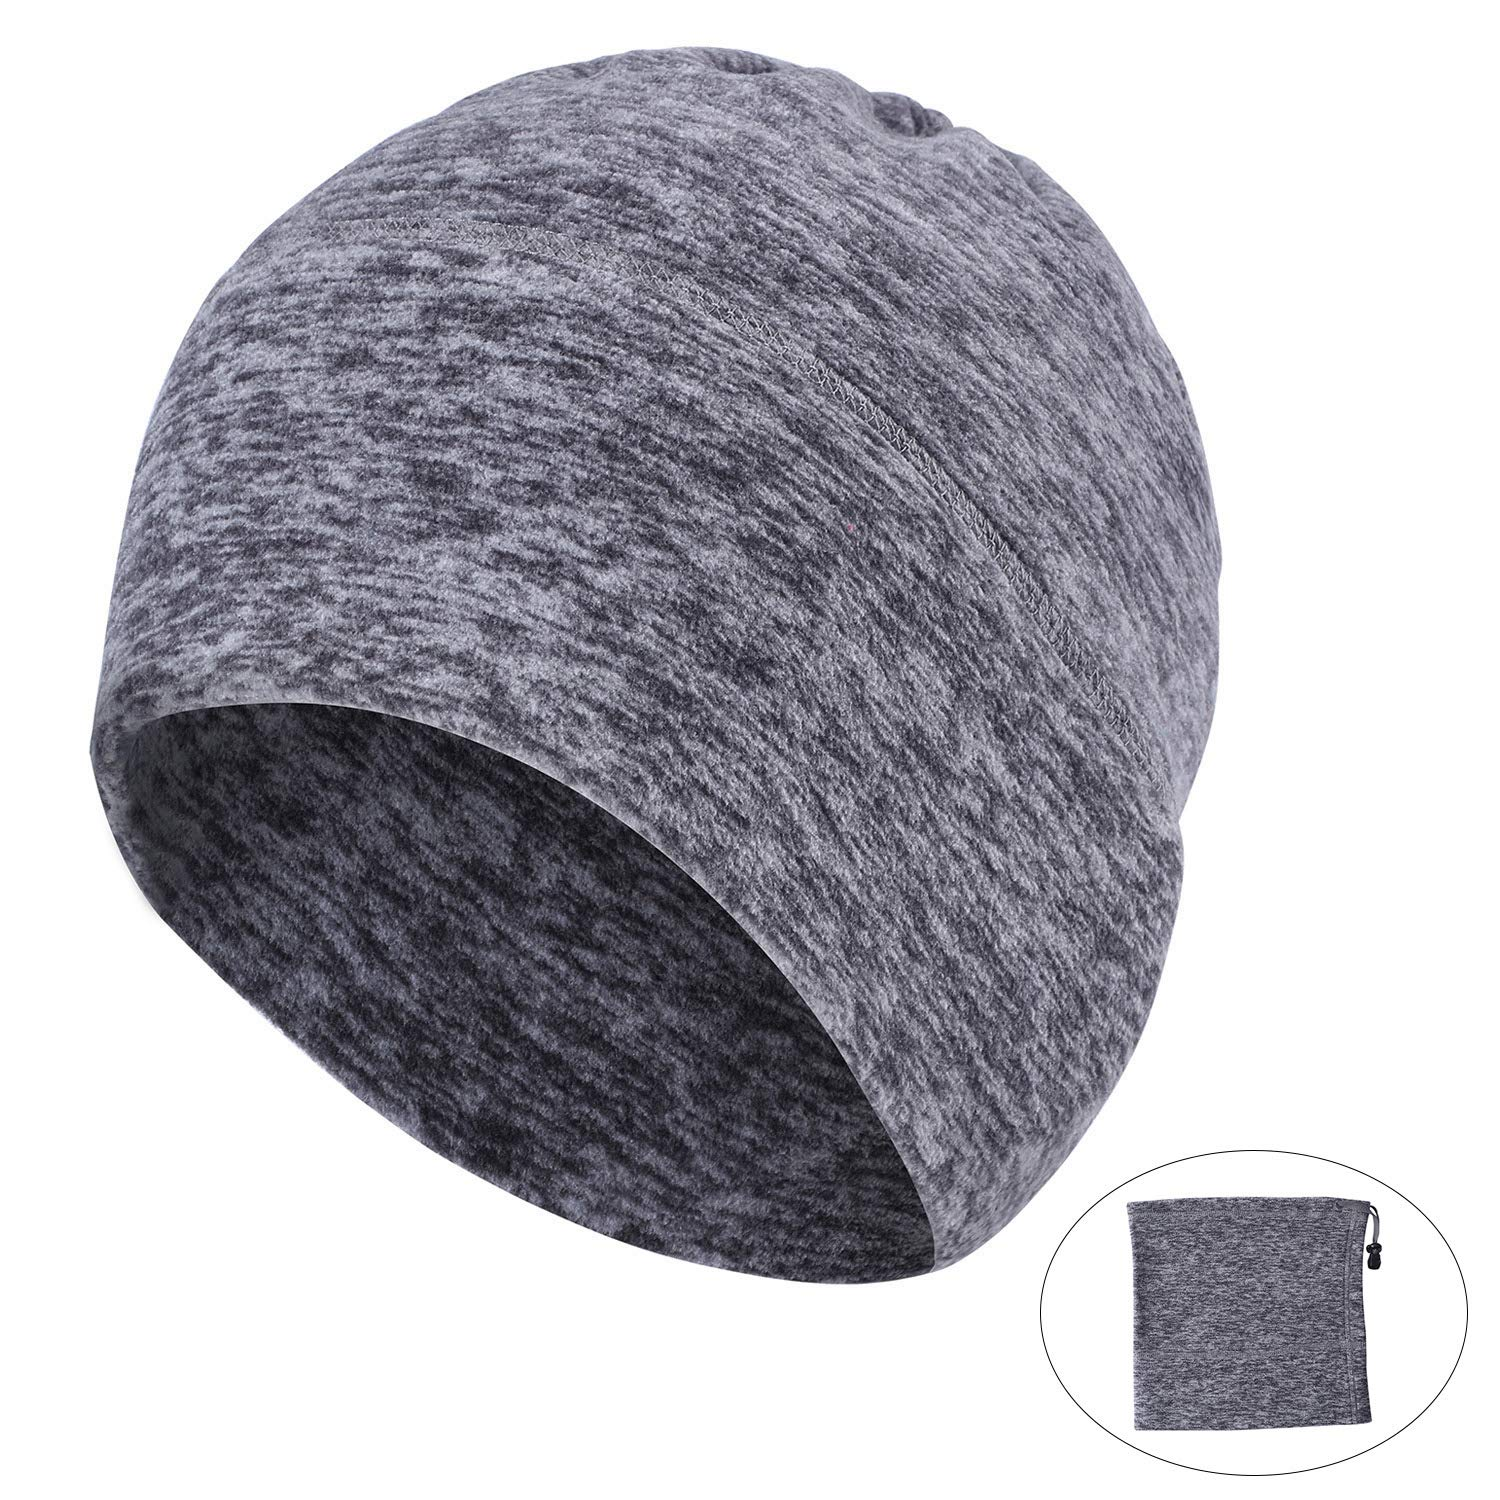 AYPOW Winter Fleece Neck Warmer, Unisex Warm Face Mask Scarf Neck Warmers Thermal Beanie Balaclava Hood for Cycling/Snowboarding/ Skiing/Running (Grey Color) - with Adjustable Strap